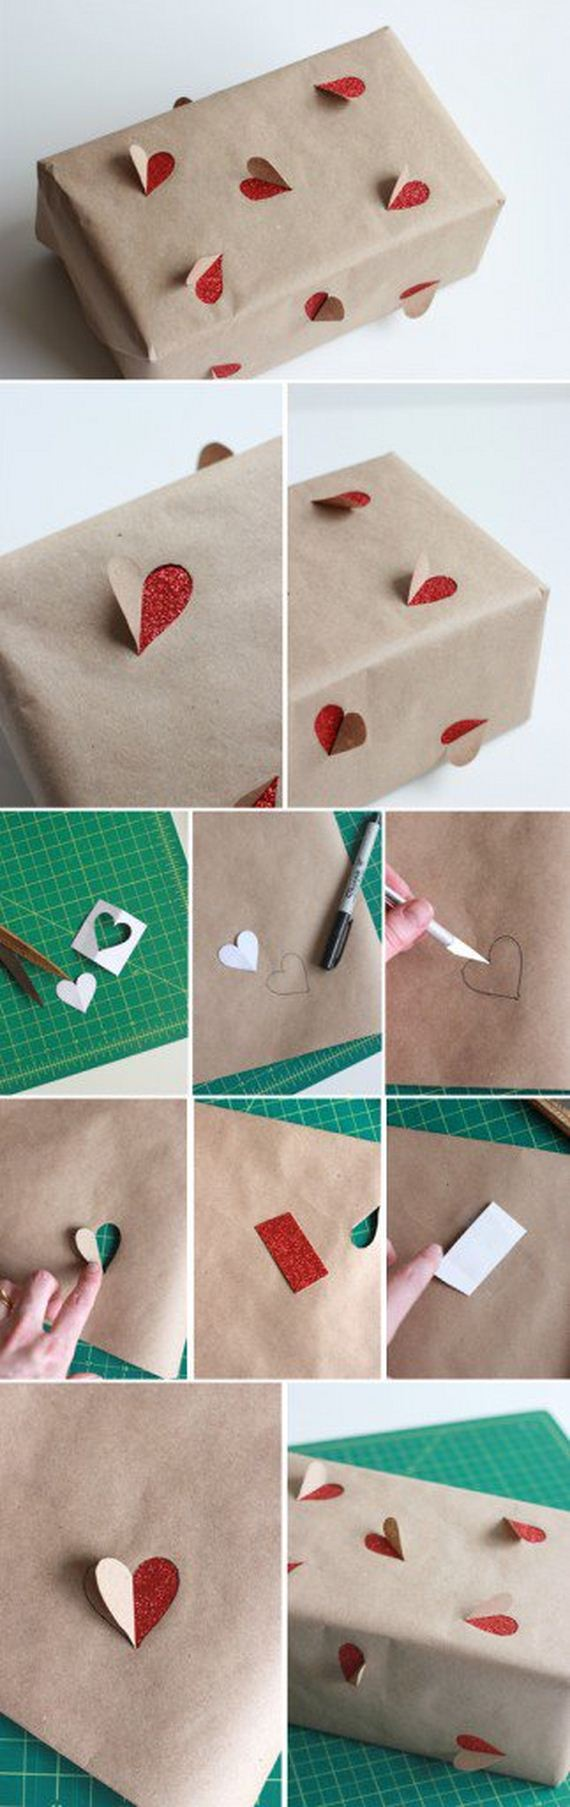 04-Romantic-DIY-Projects